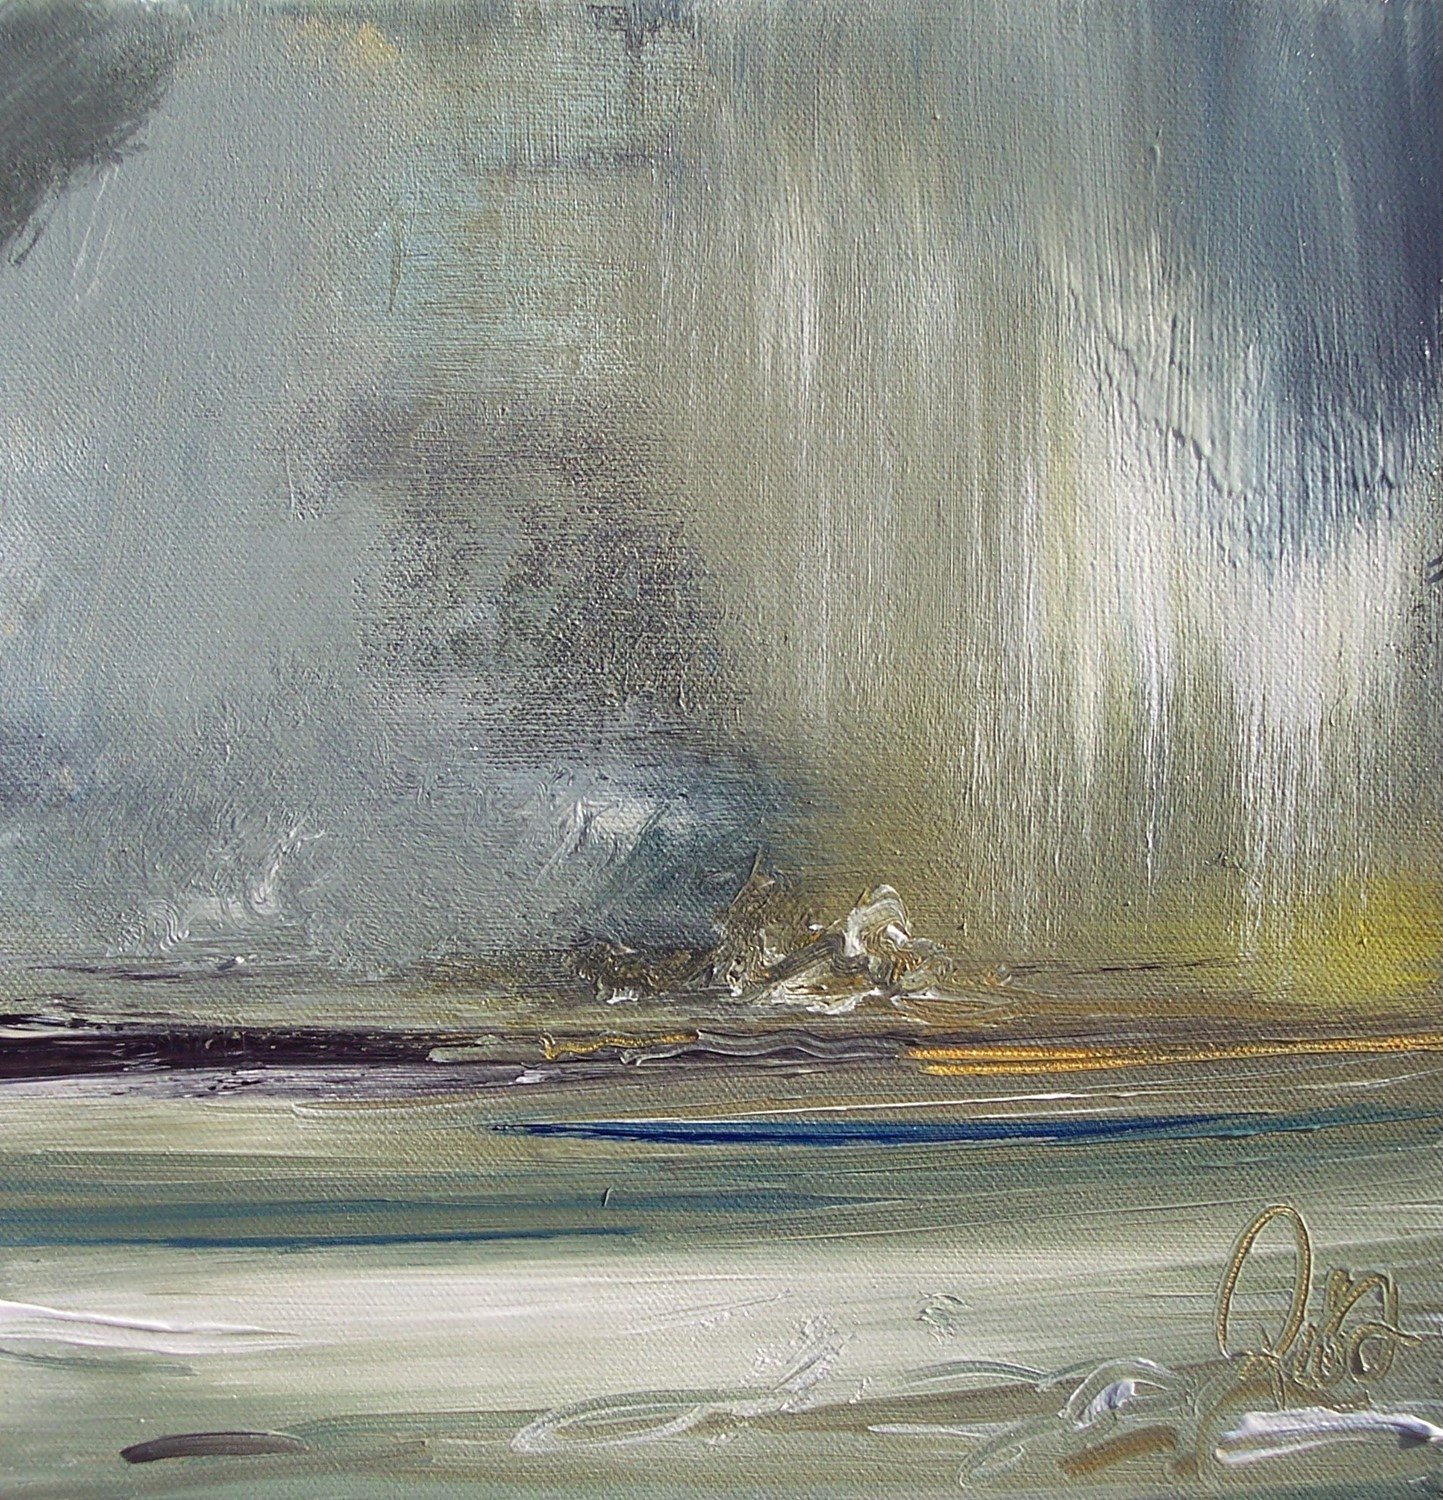 'Capturing Rain' by artist Rosanne Barr